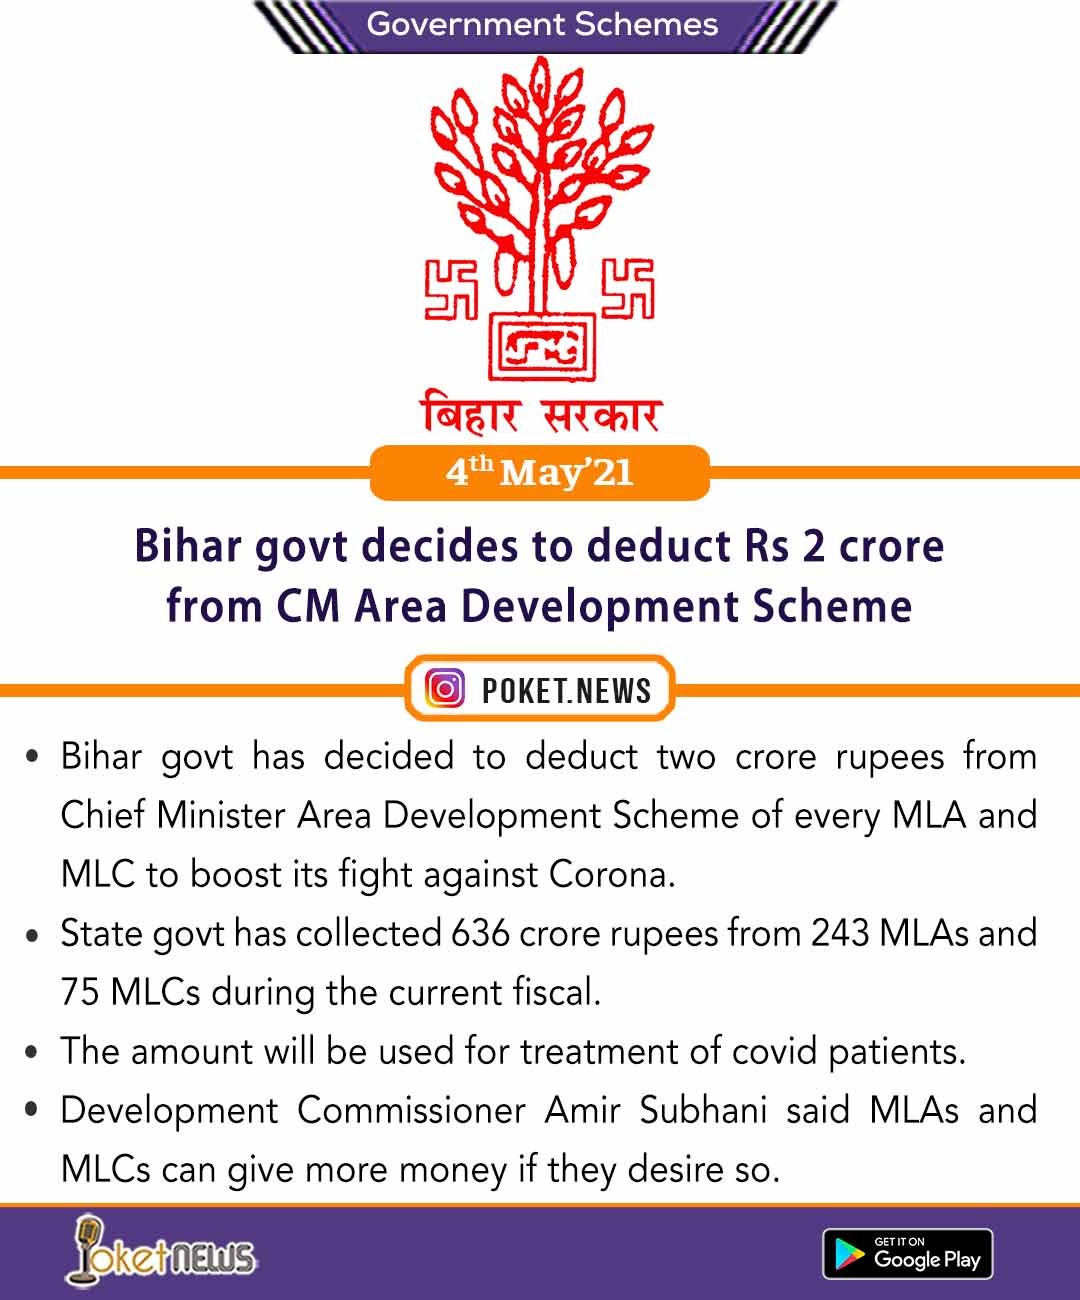 Bihar govt decides to deduct Rs 2 crore from CM Area Development Scheme